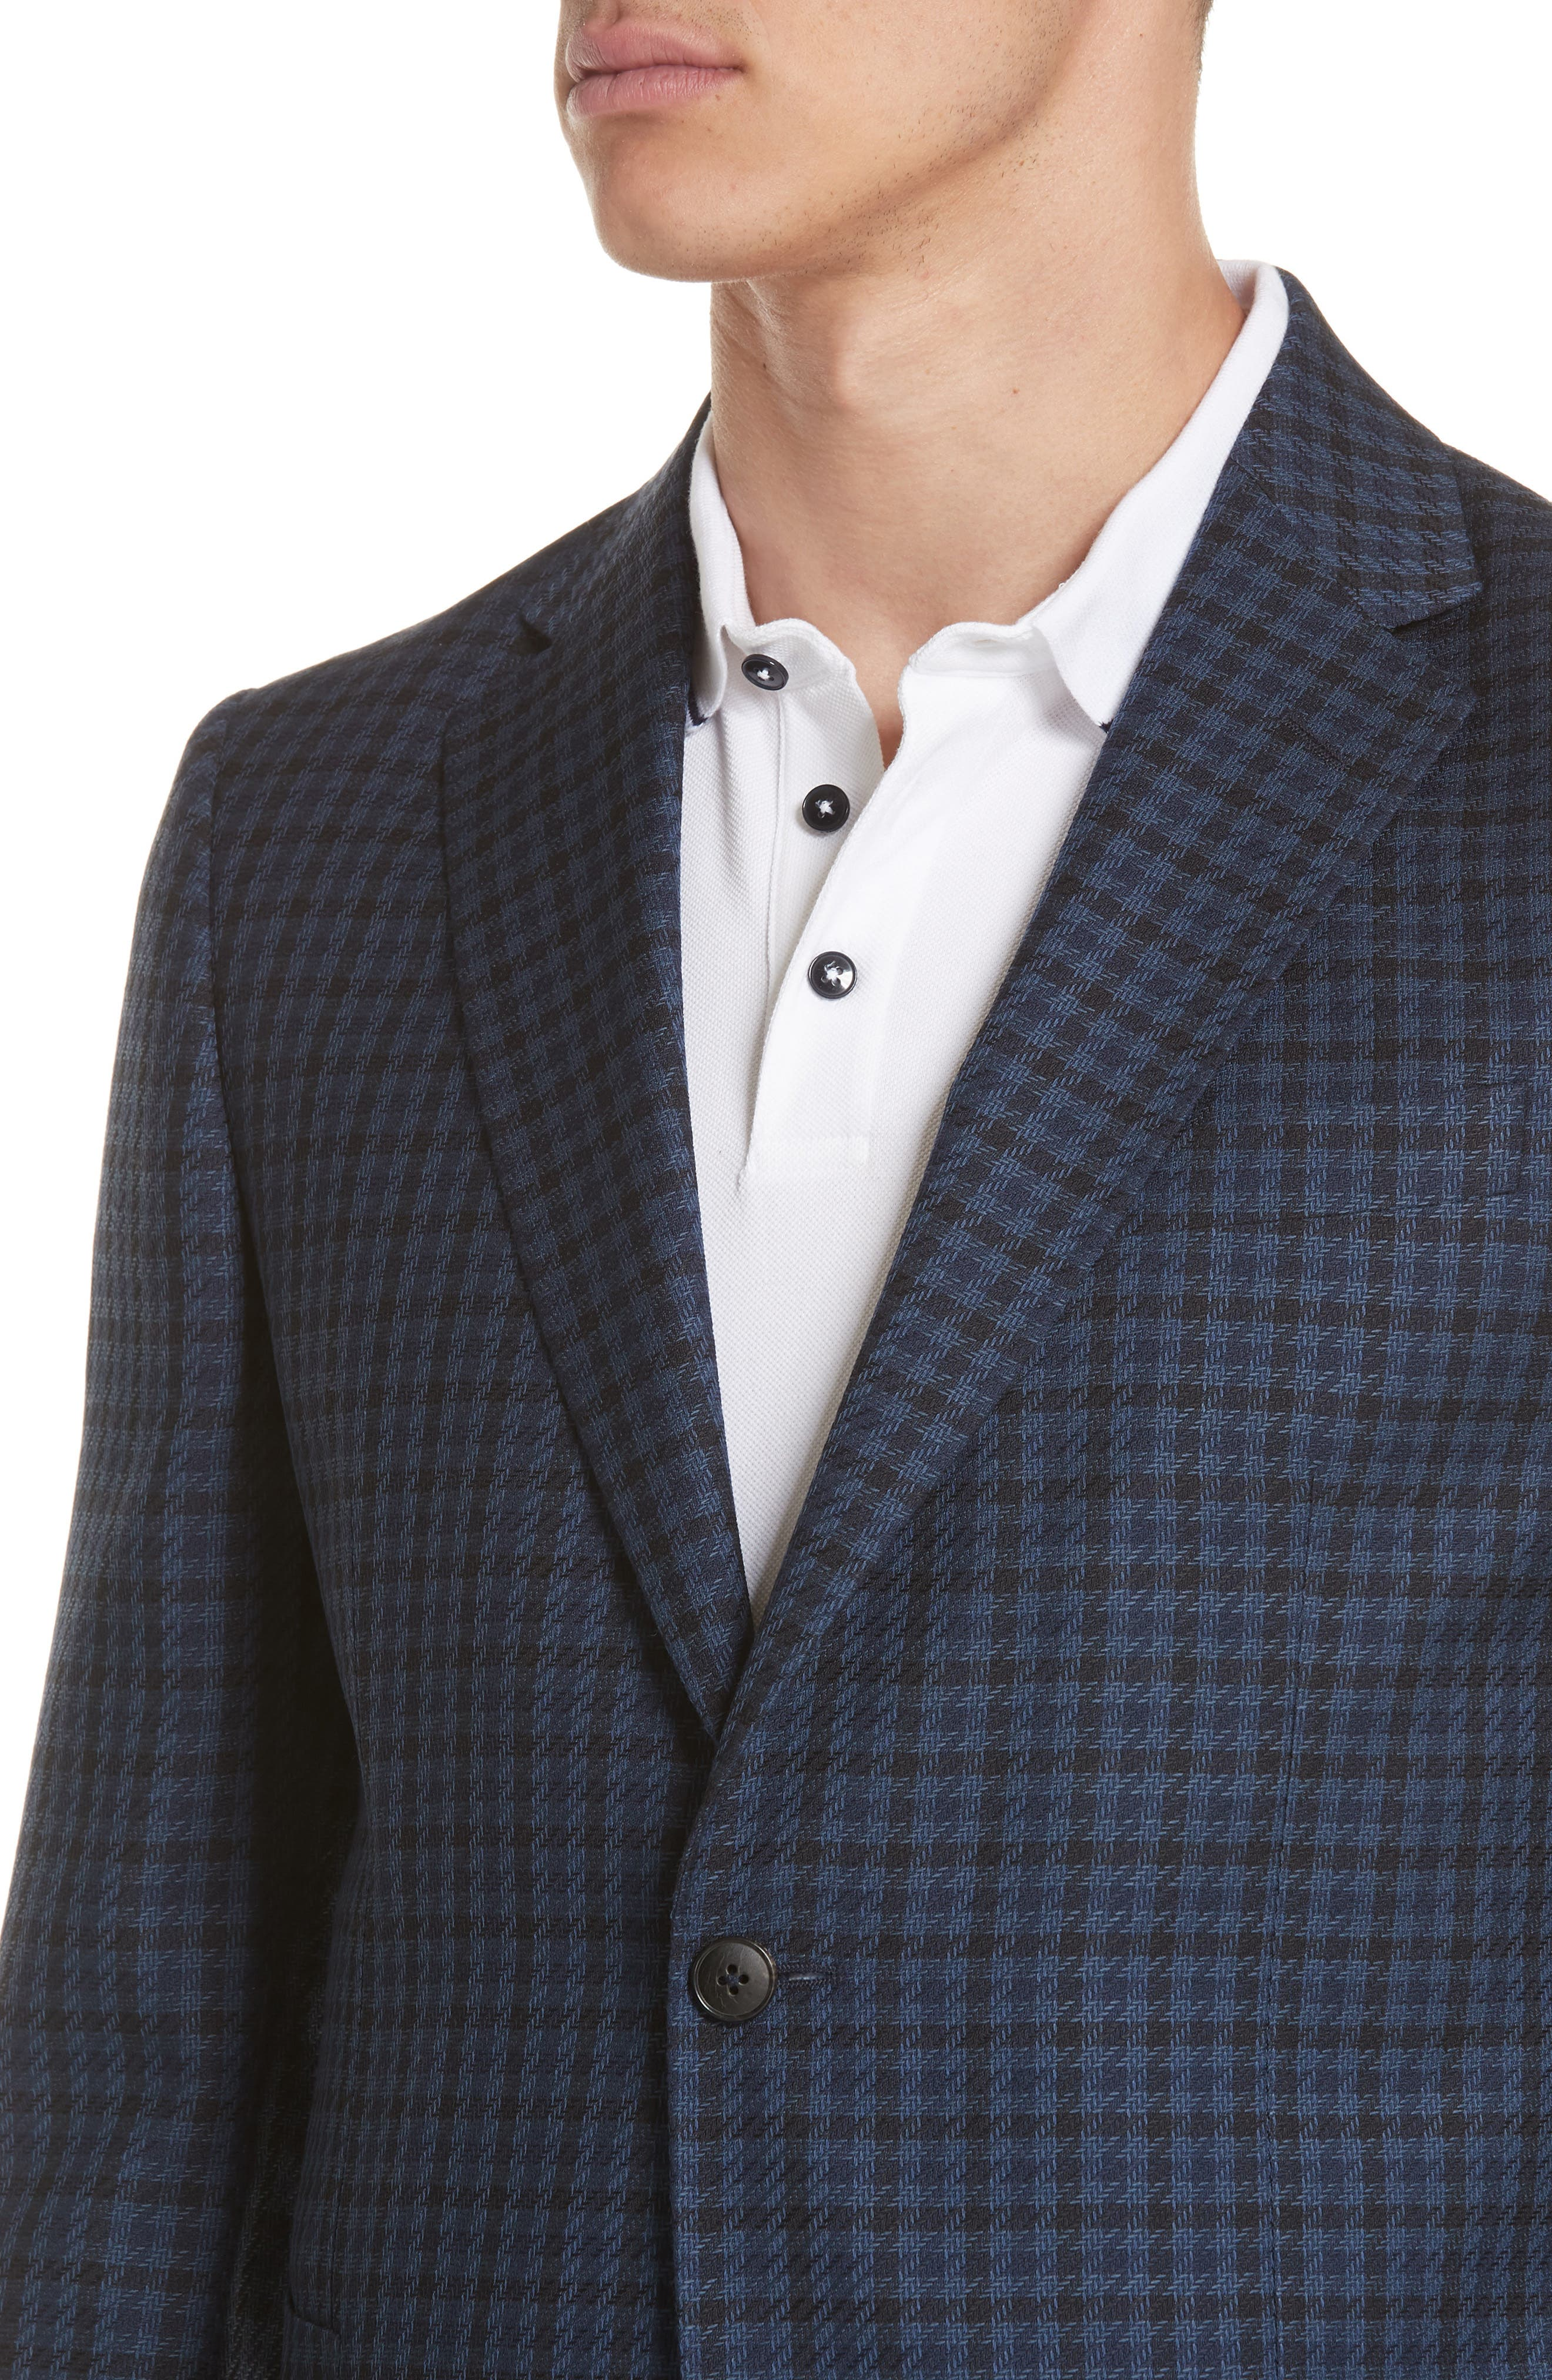 Trim Fit Houndstooth Wool Sport Coat,                             Alternate thumbnail 4, color,                             416